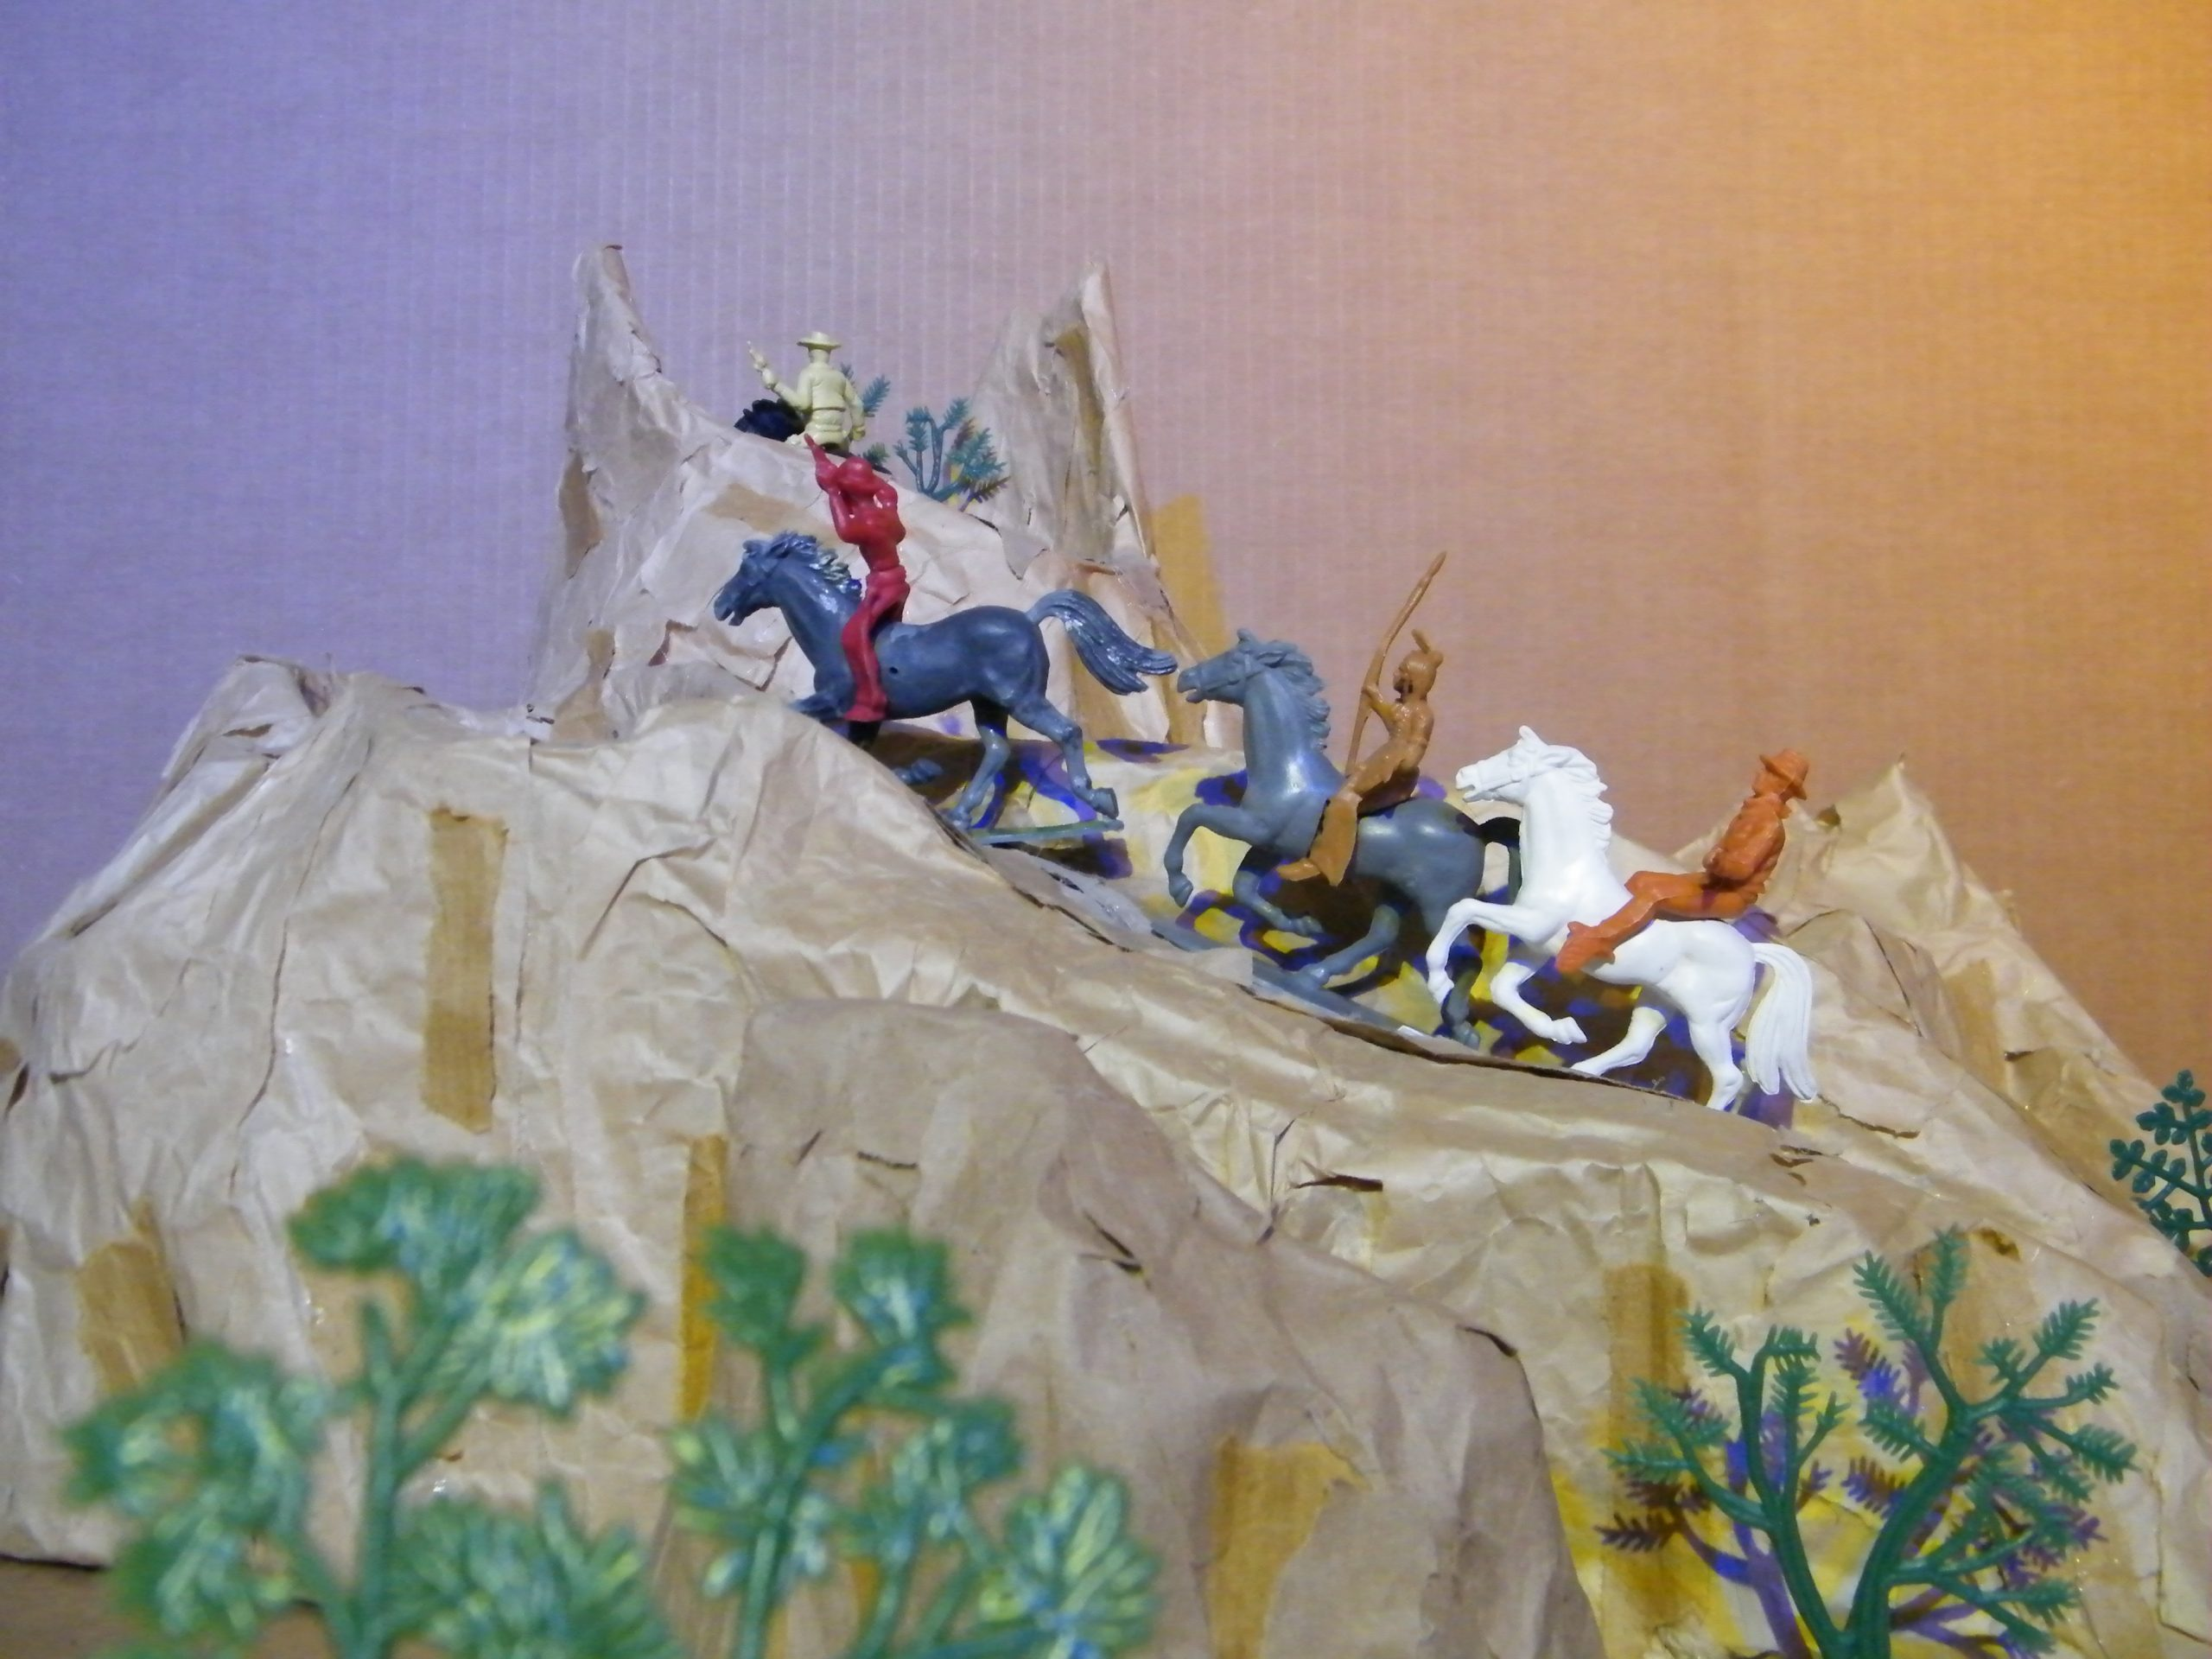 Plastic cowboys and native Americans fighting